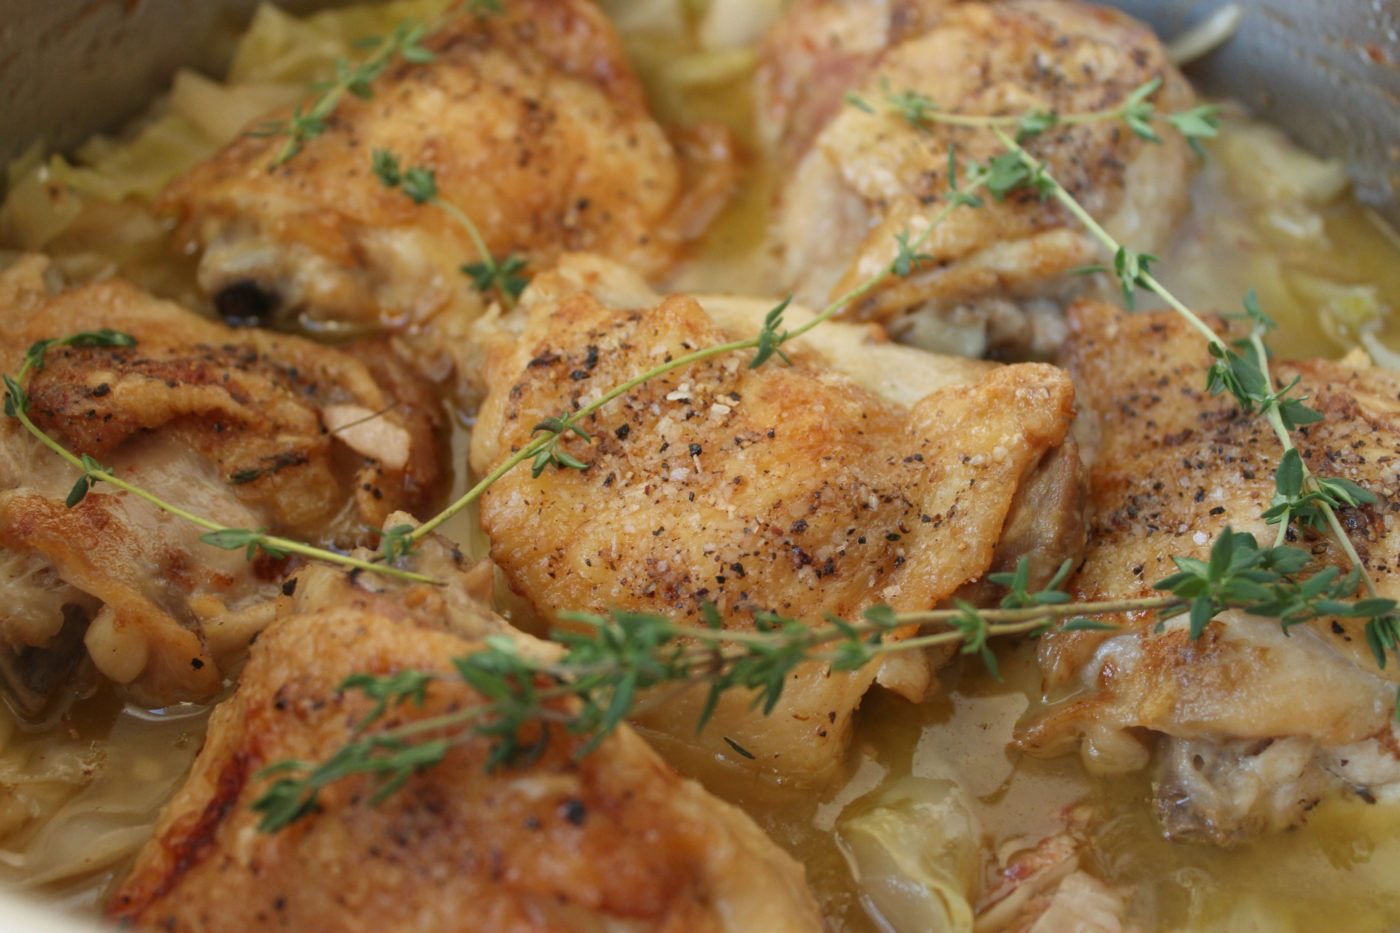 Braised chicken thighs - an easy weeknight dinner.